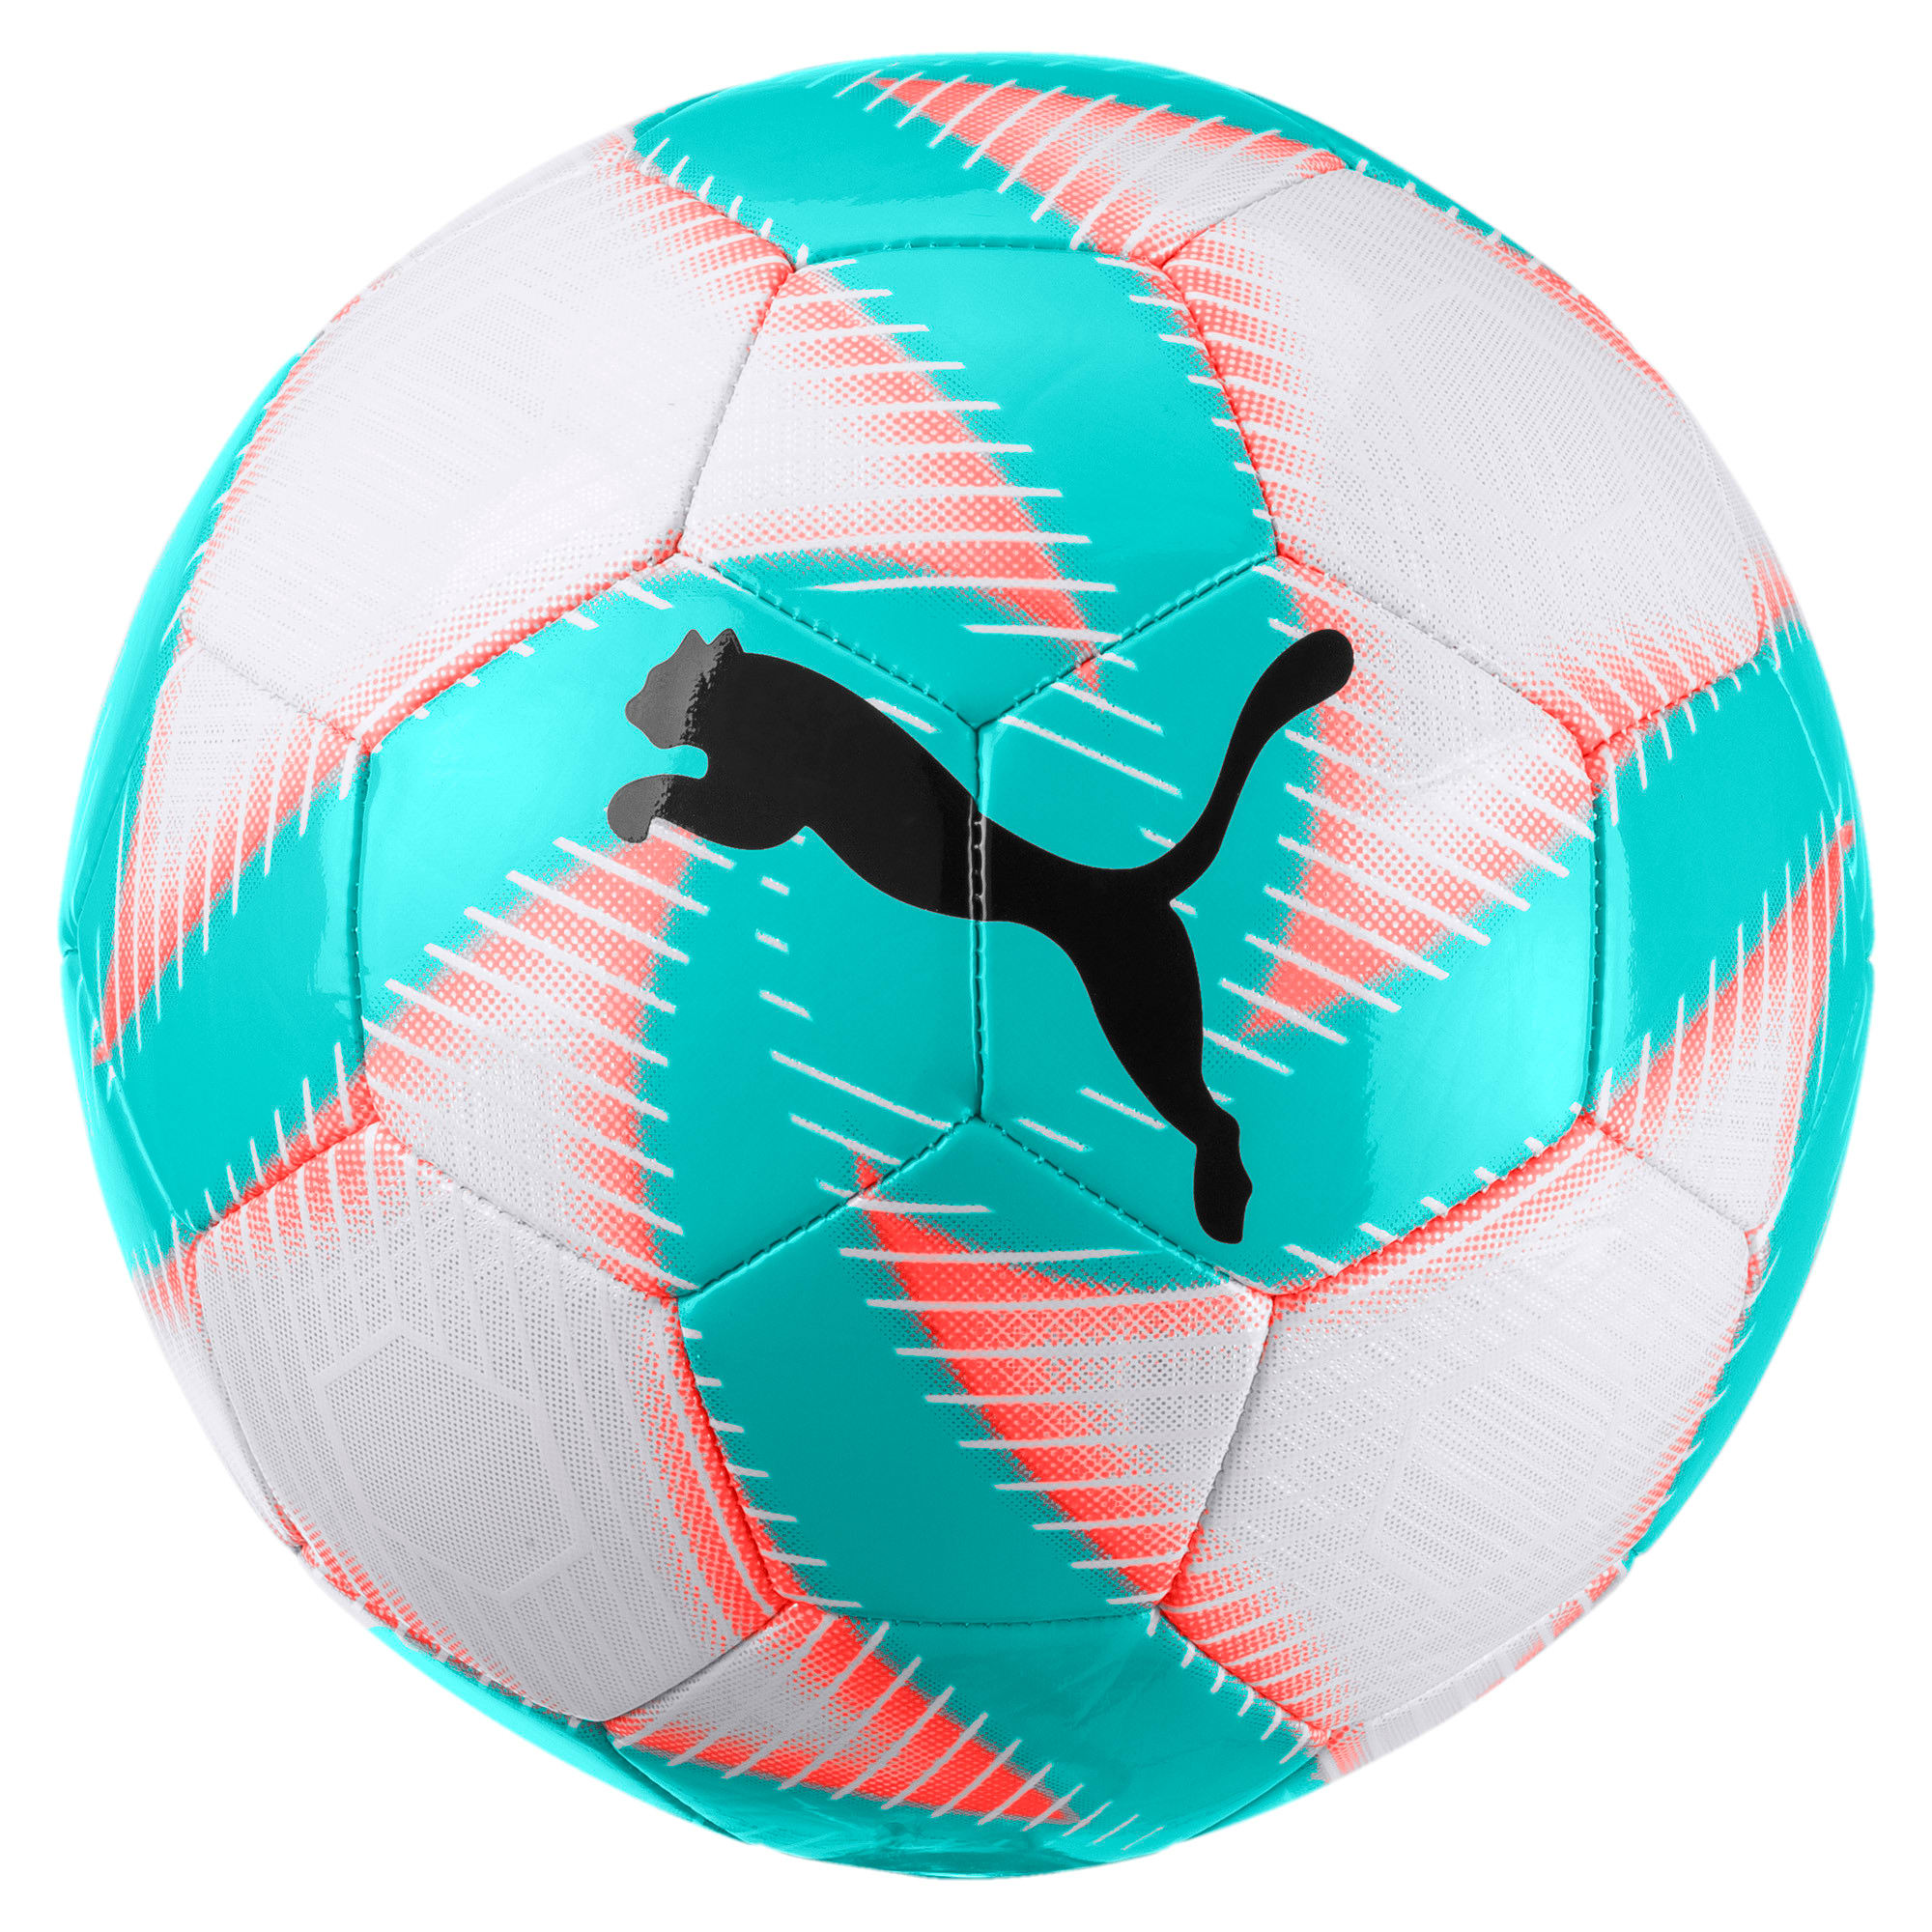 Thumbnail 1 of FUTURE Flare Soccer Ball, White-Turquoise-Nrgy Red-Blk, medium